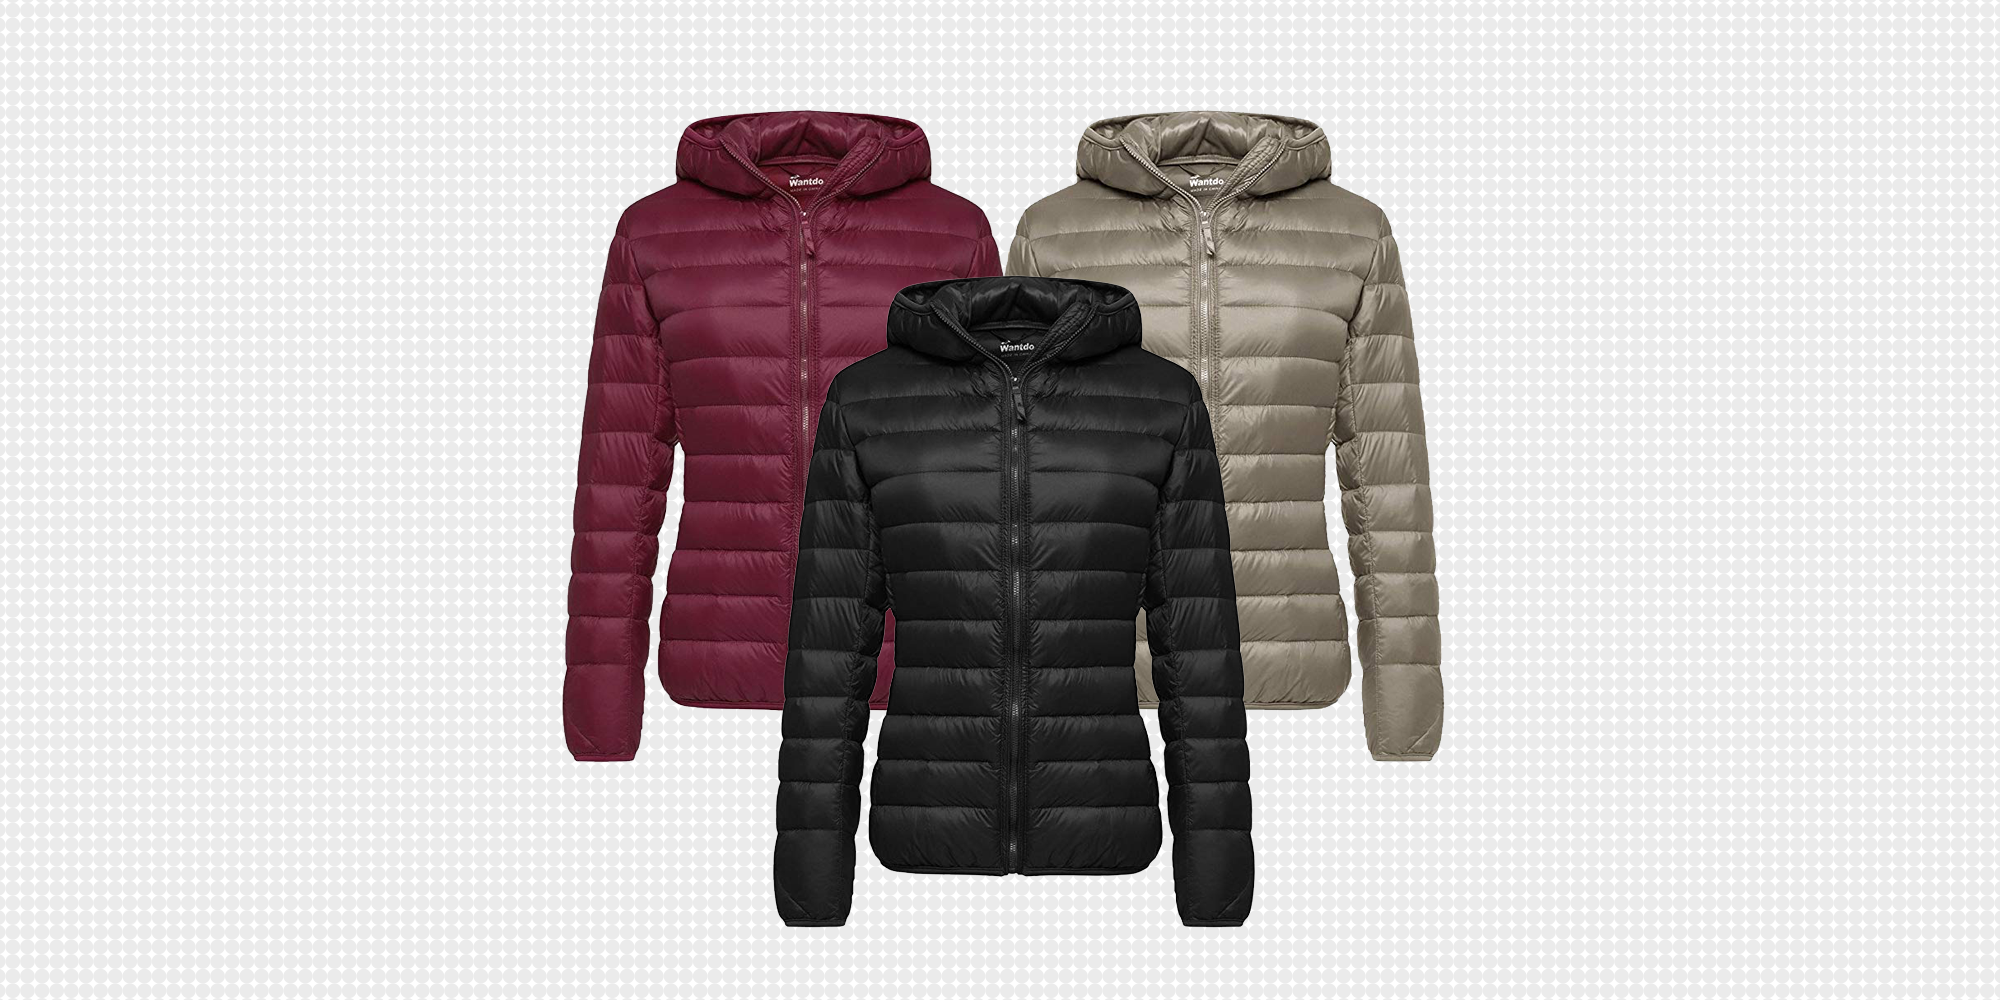 Amazon Is Selling a Wantdo Winter Jacket for Under $60